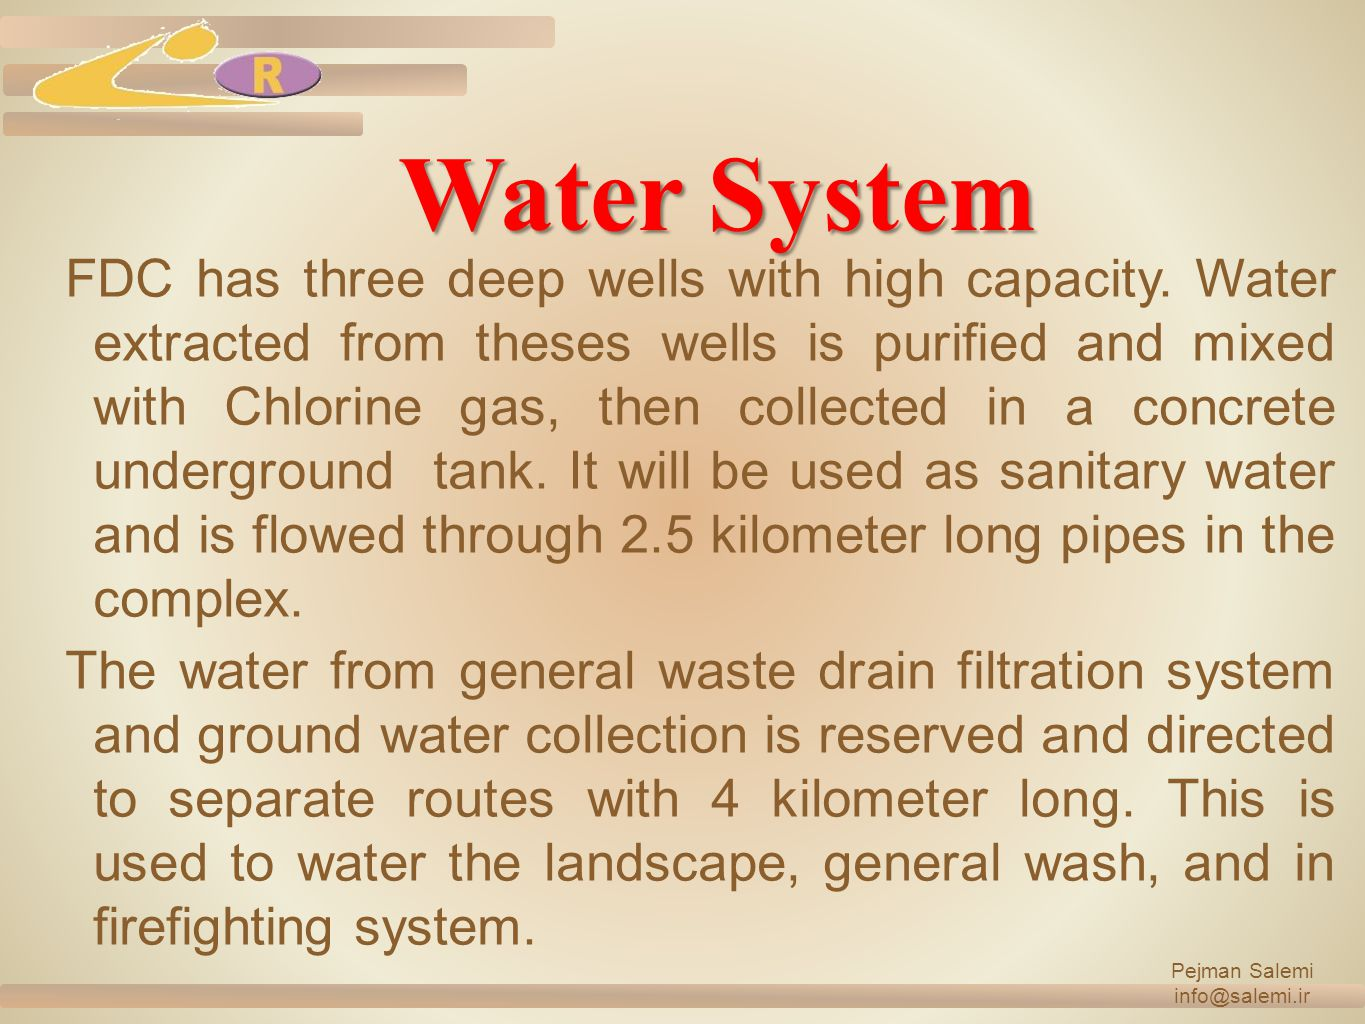 Water System FDC has three deep wells with high capacity.